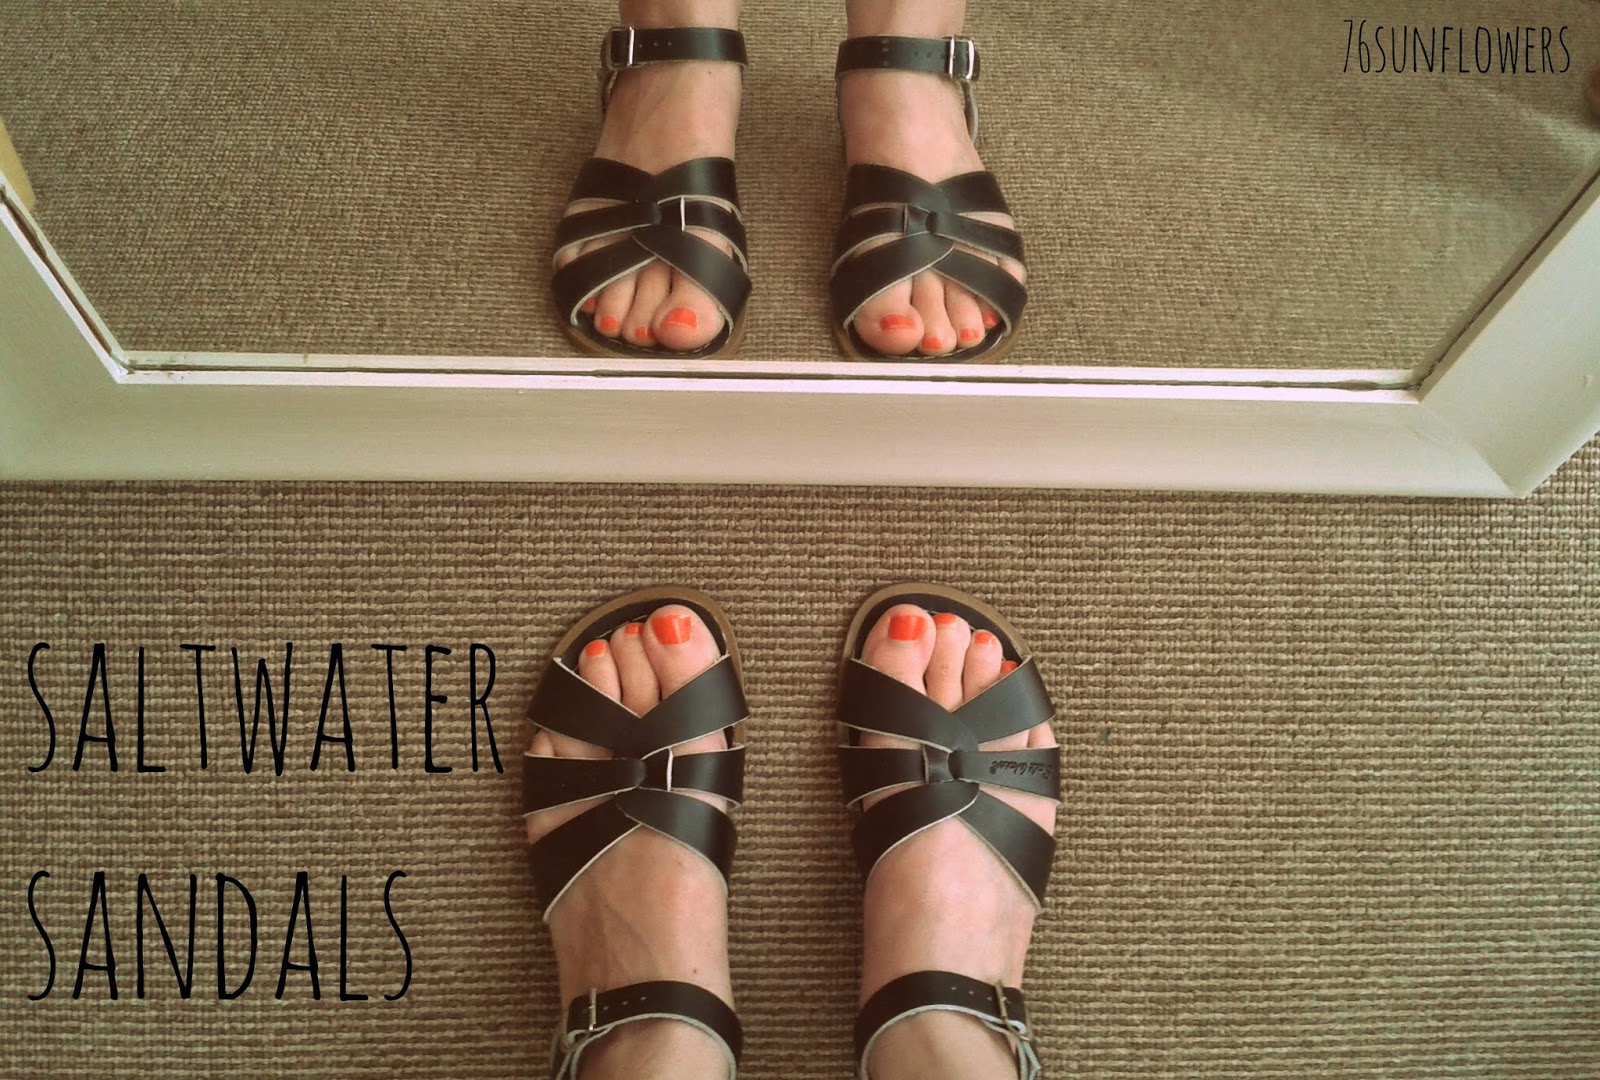 Saltwater sandals // 76sunflowers